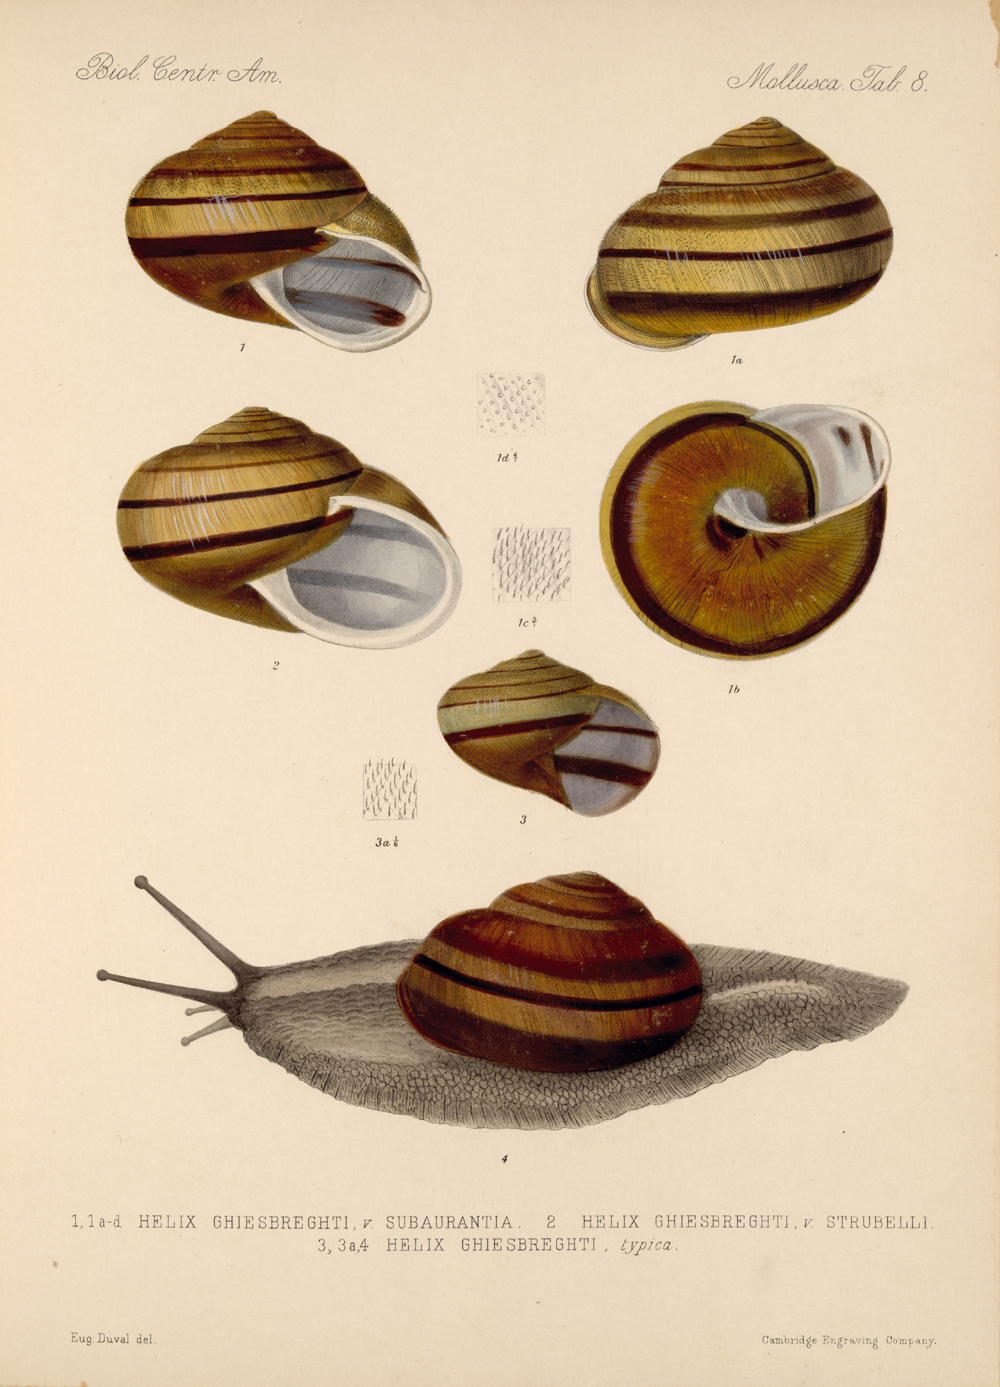 Shells and Mollusks,  Image number:bca_06_00_00_725